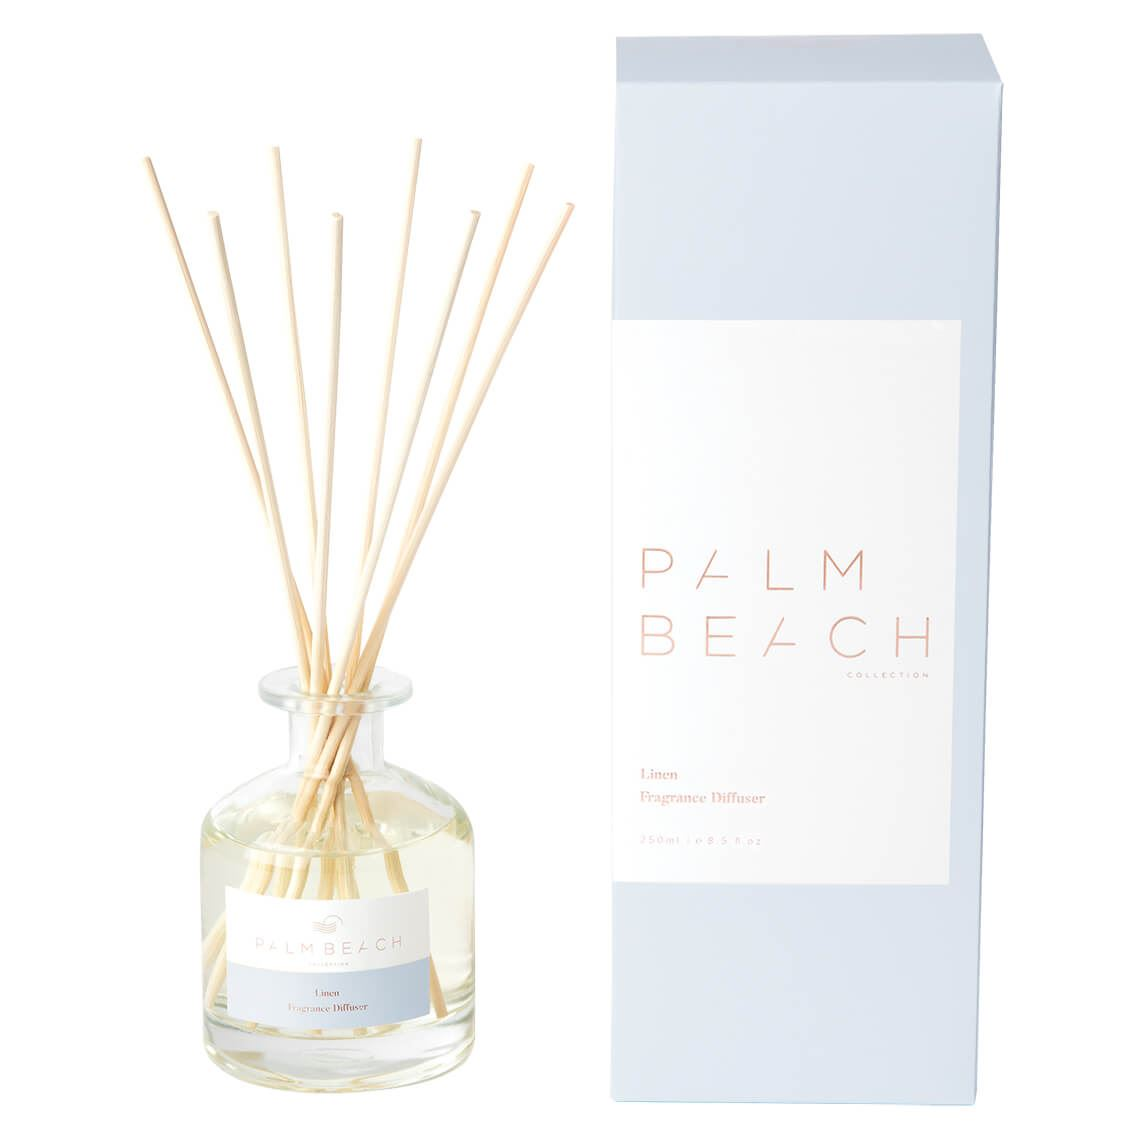 Palm Beachcollection Diffuser Size 250 ml in Linen Freedom